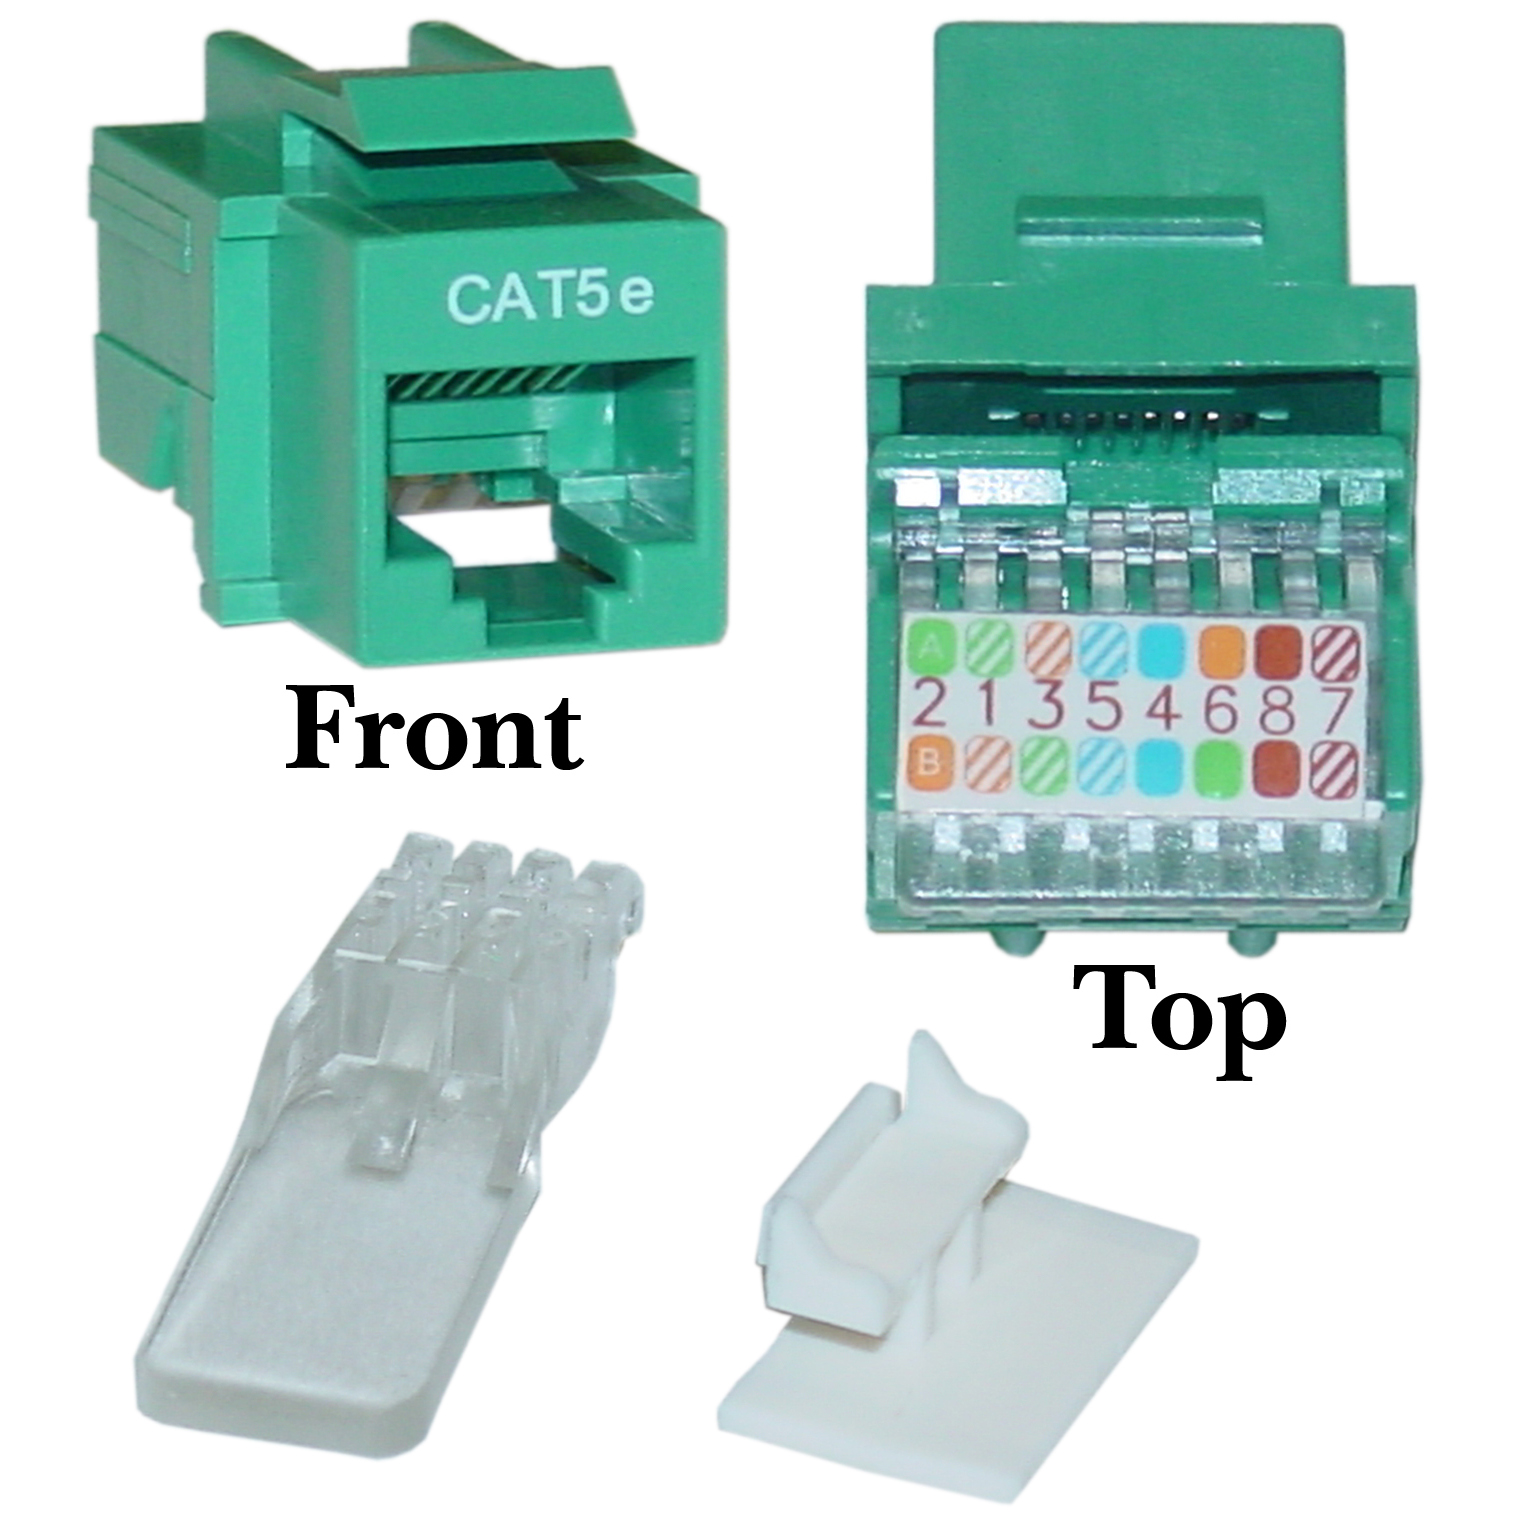 Cat5e rj45 keystone jack wiring diagram data wiring diagrams green cat5e rj45 keystone jack toolless rh cablewholesale com cat5 rj45 wiring diagram wall ethernet plate wiring diagram asfbconference2016 Image collections